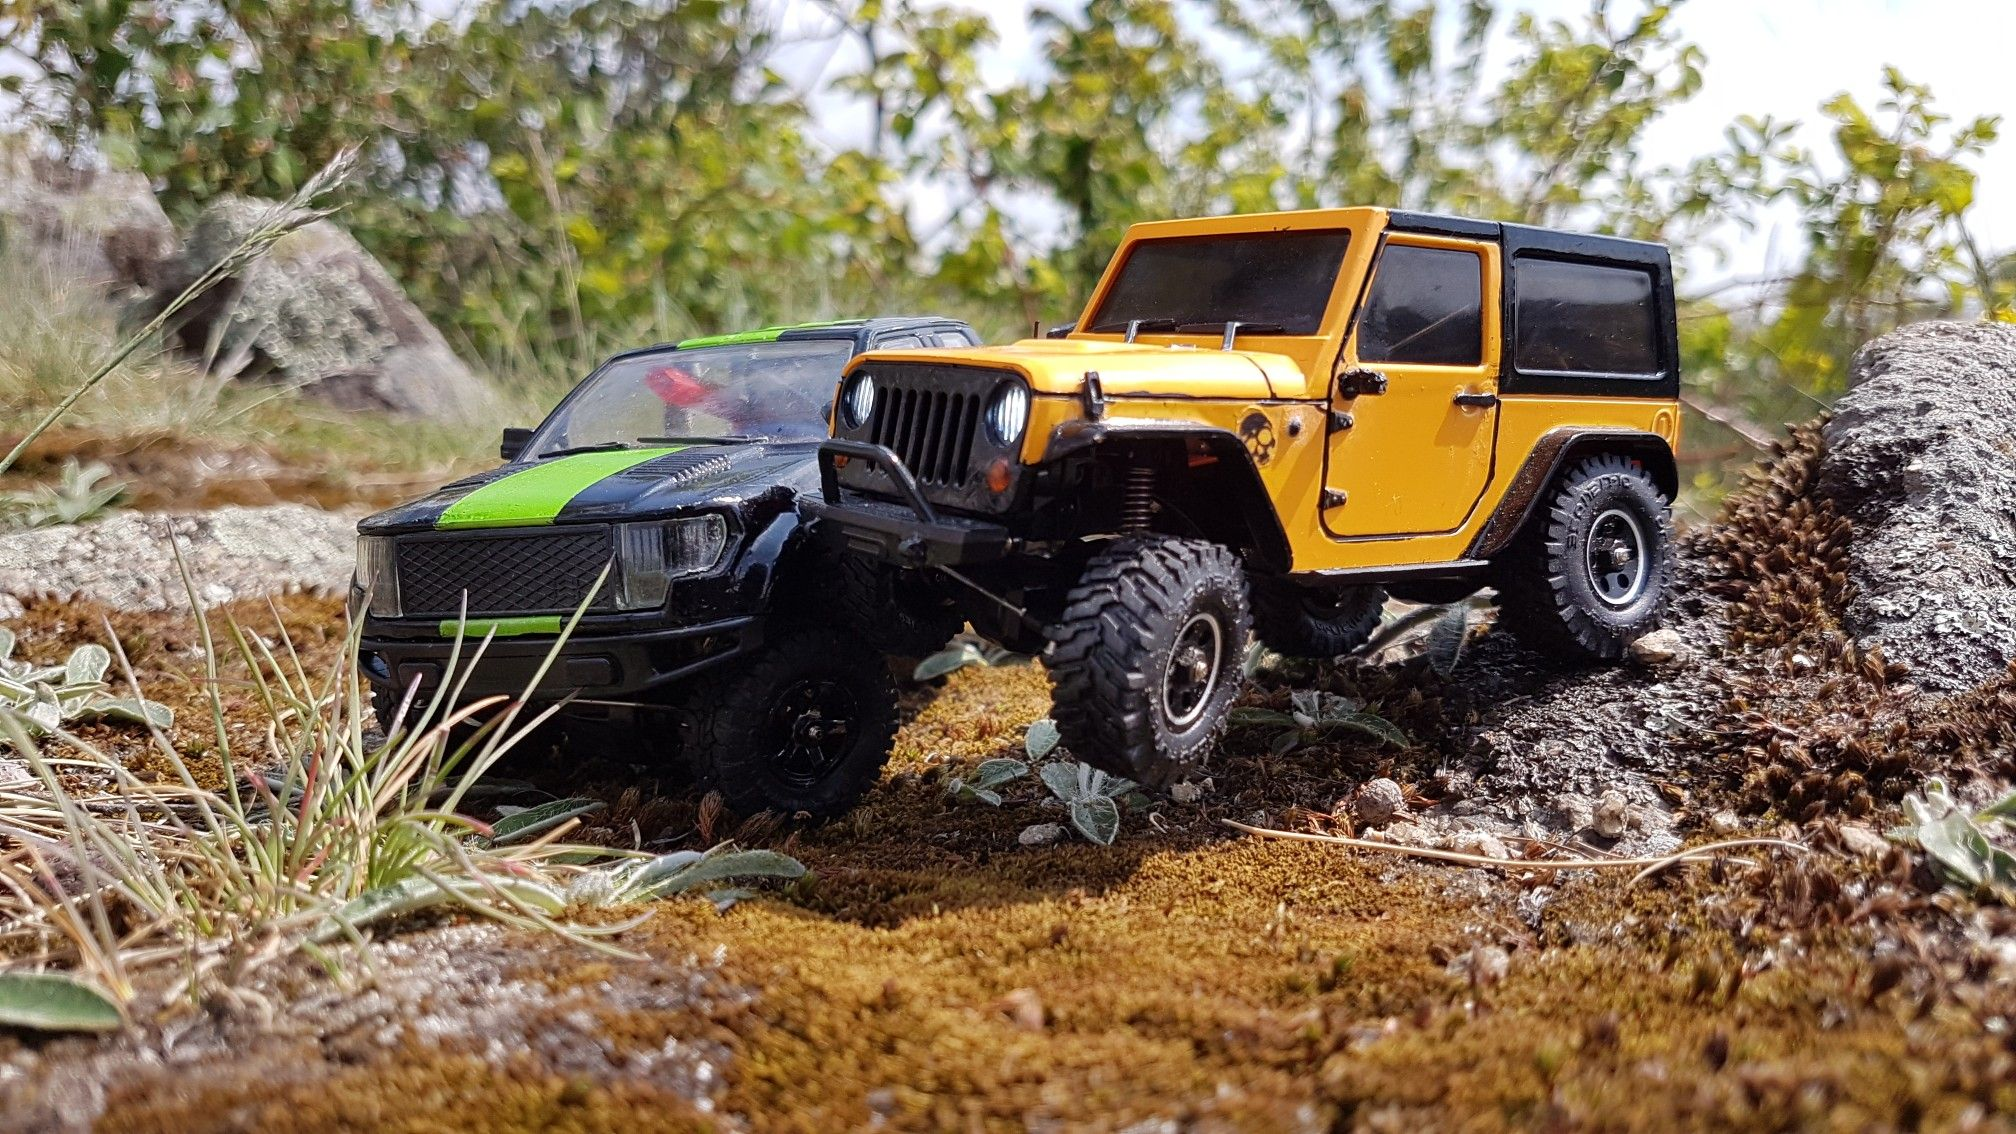 Orlandoo hunter oh35a01 micro rc jeep wrangler ford f159 1 35 rc